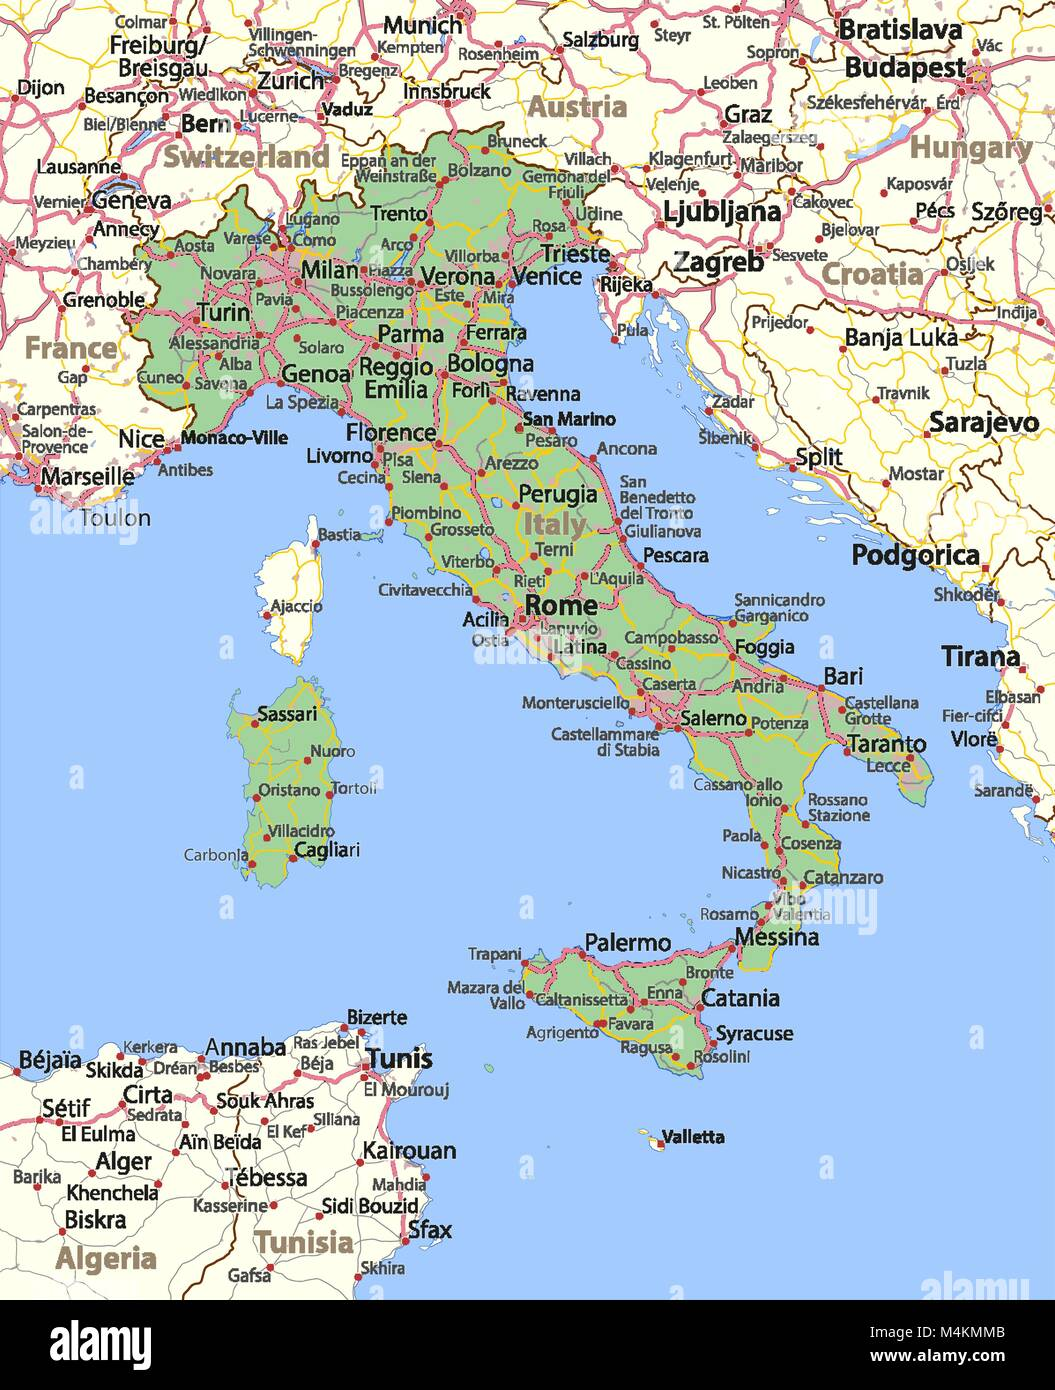 Map of Italy Shows country borders urban areas place names and